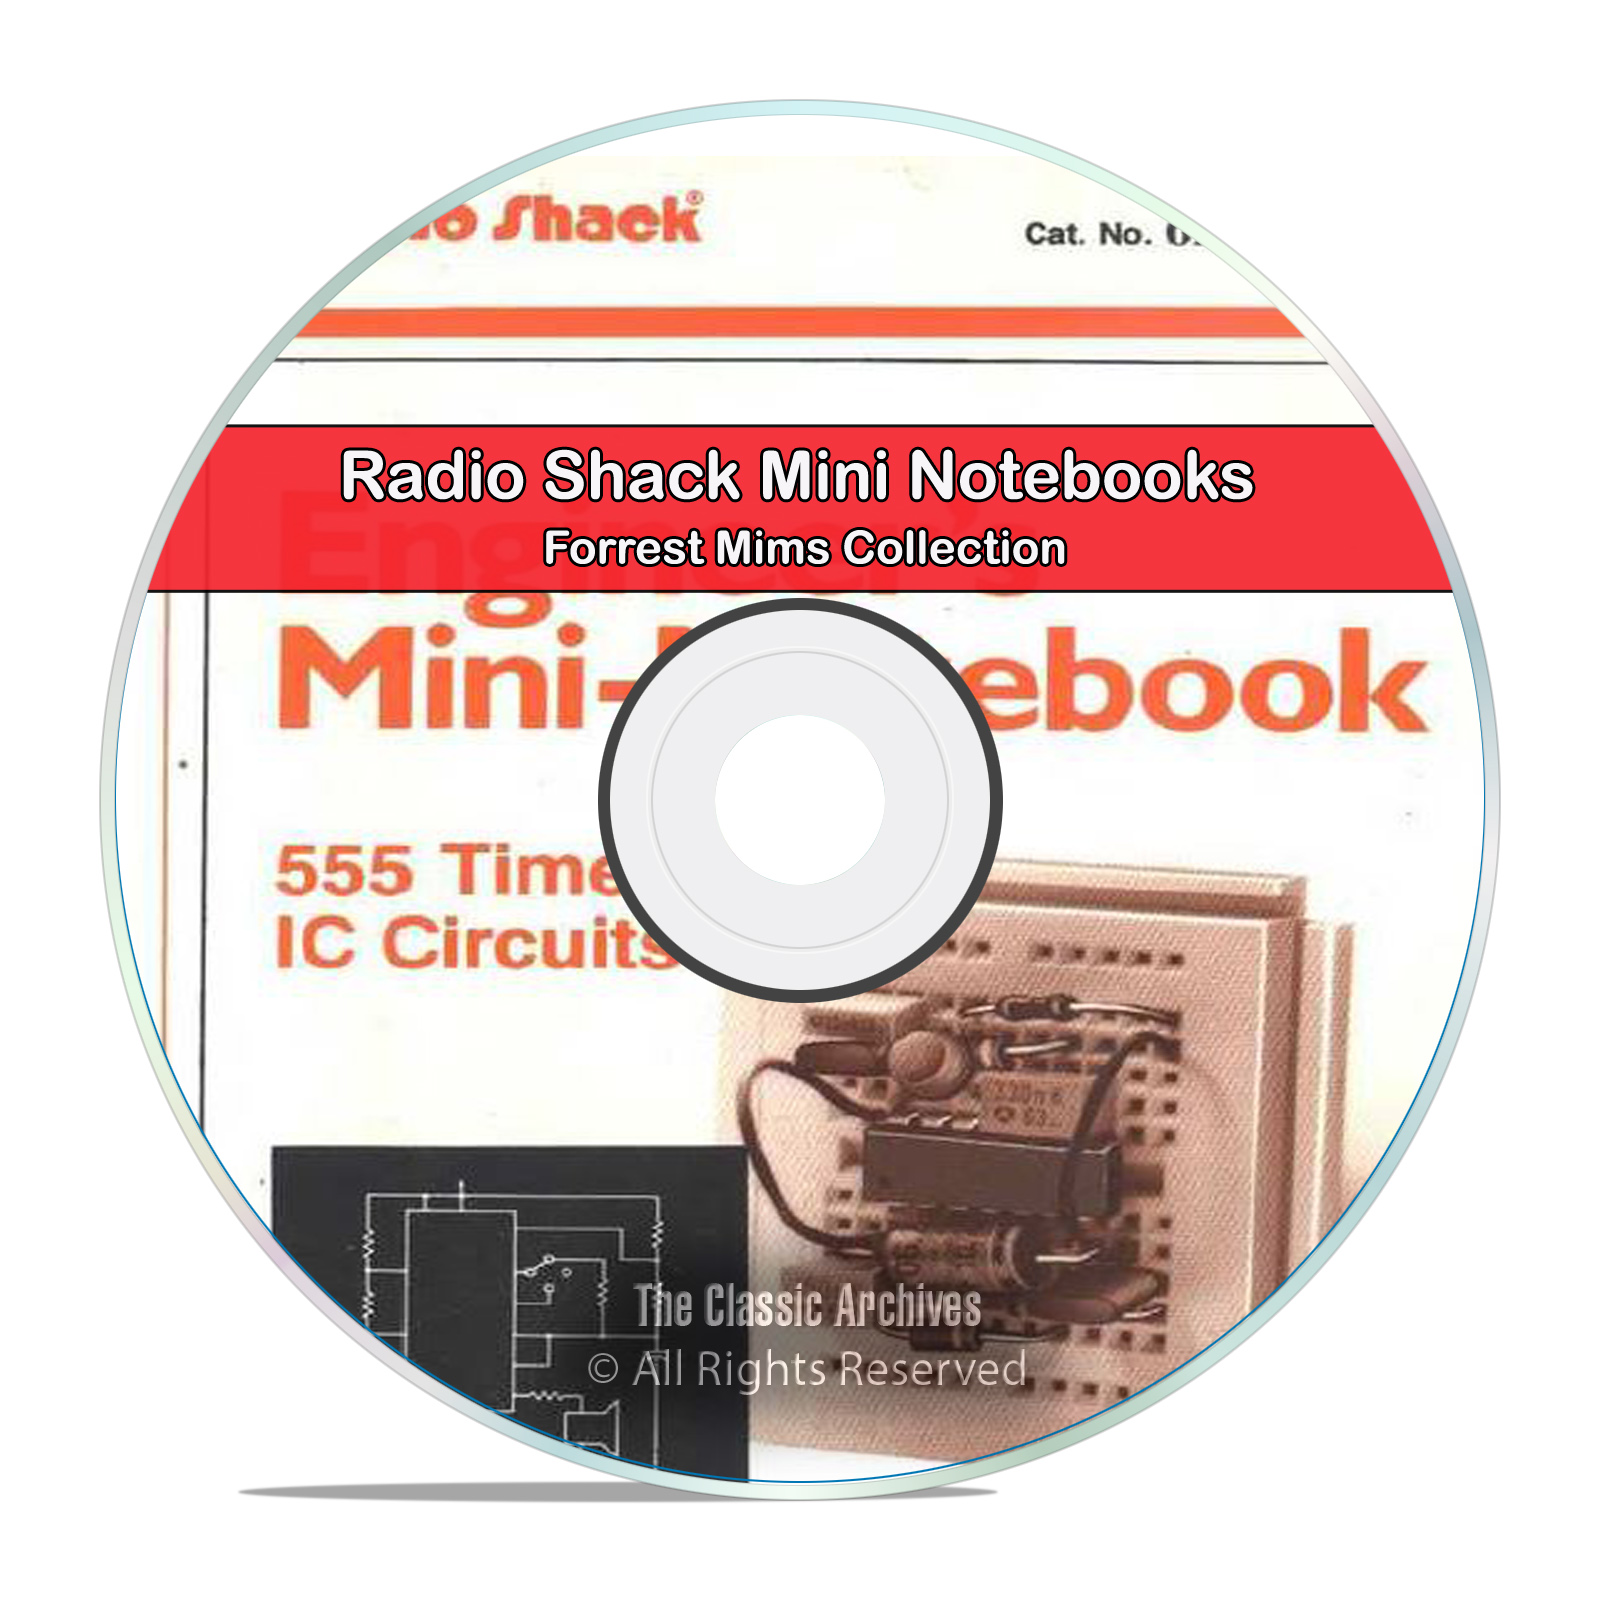 RadioShack Engineer's Mini Notebooks Forrest Mims Electronics Books DVD